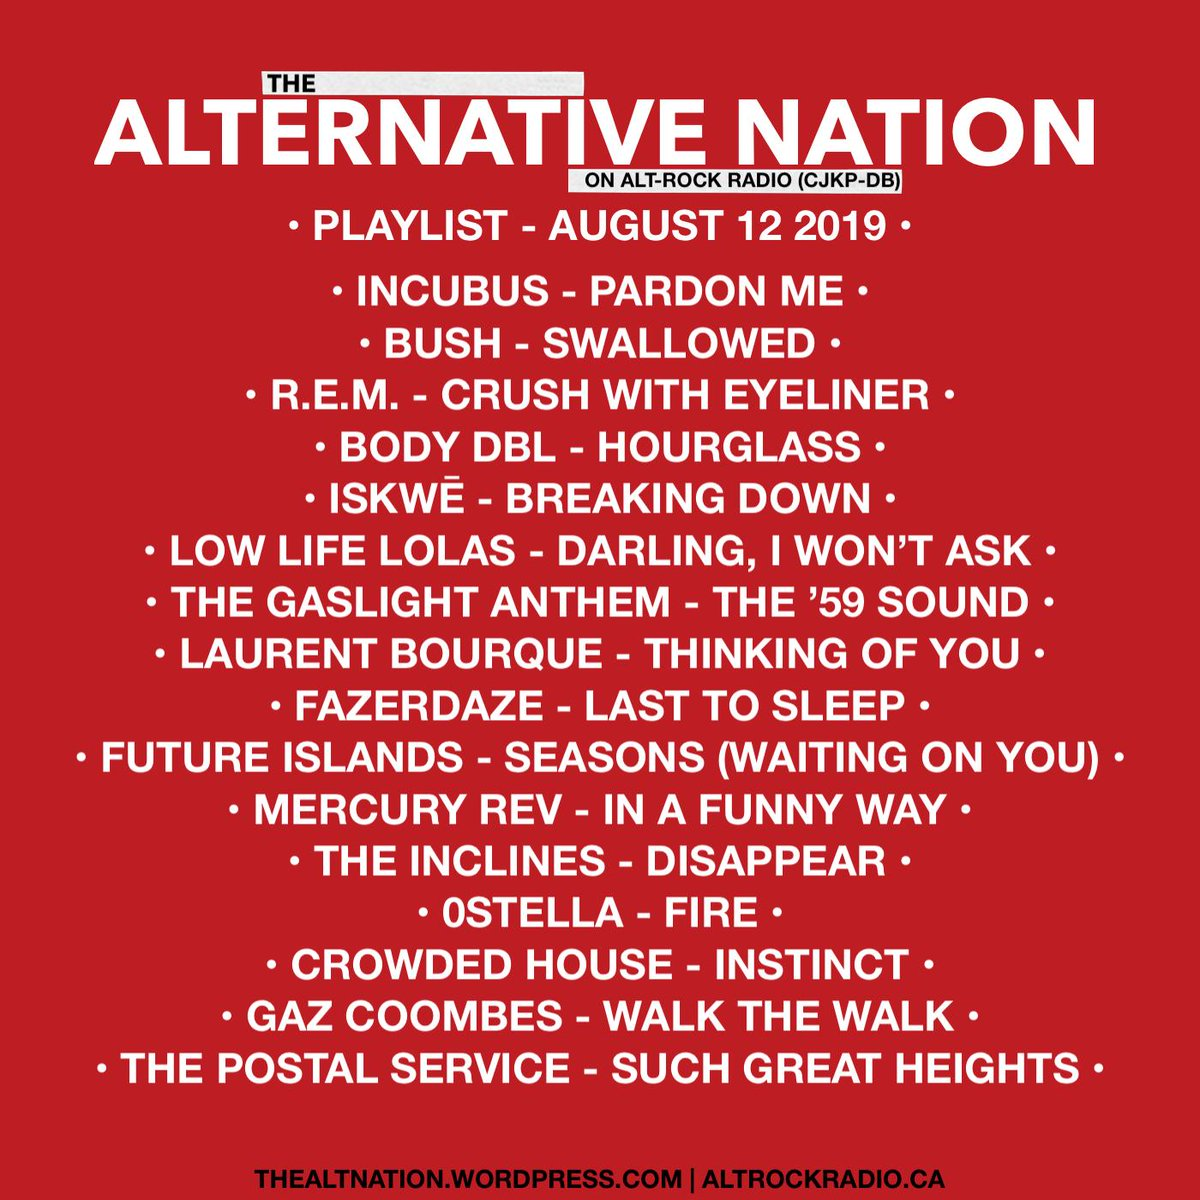 Playlist for last nights edition of The Alternative Nation on @altrockradioca. If you missed the show or live outside of Canada, you can stream it now on http://mixcloud.com/thealternativenation … #Playlist #Radio #Mixcloud #Canada #Music #yourFMalternative #Indie #AltRock #Pop #Electronicpic.twitter.com/SW8kaGsMBO